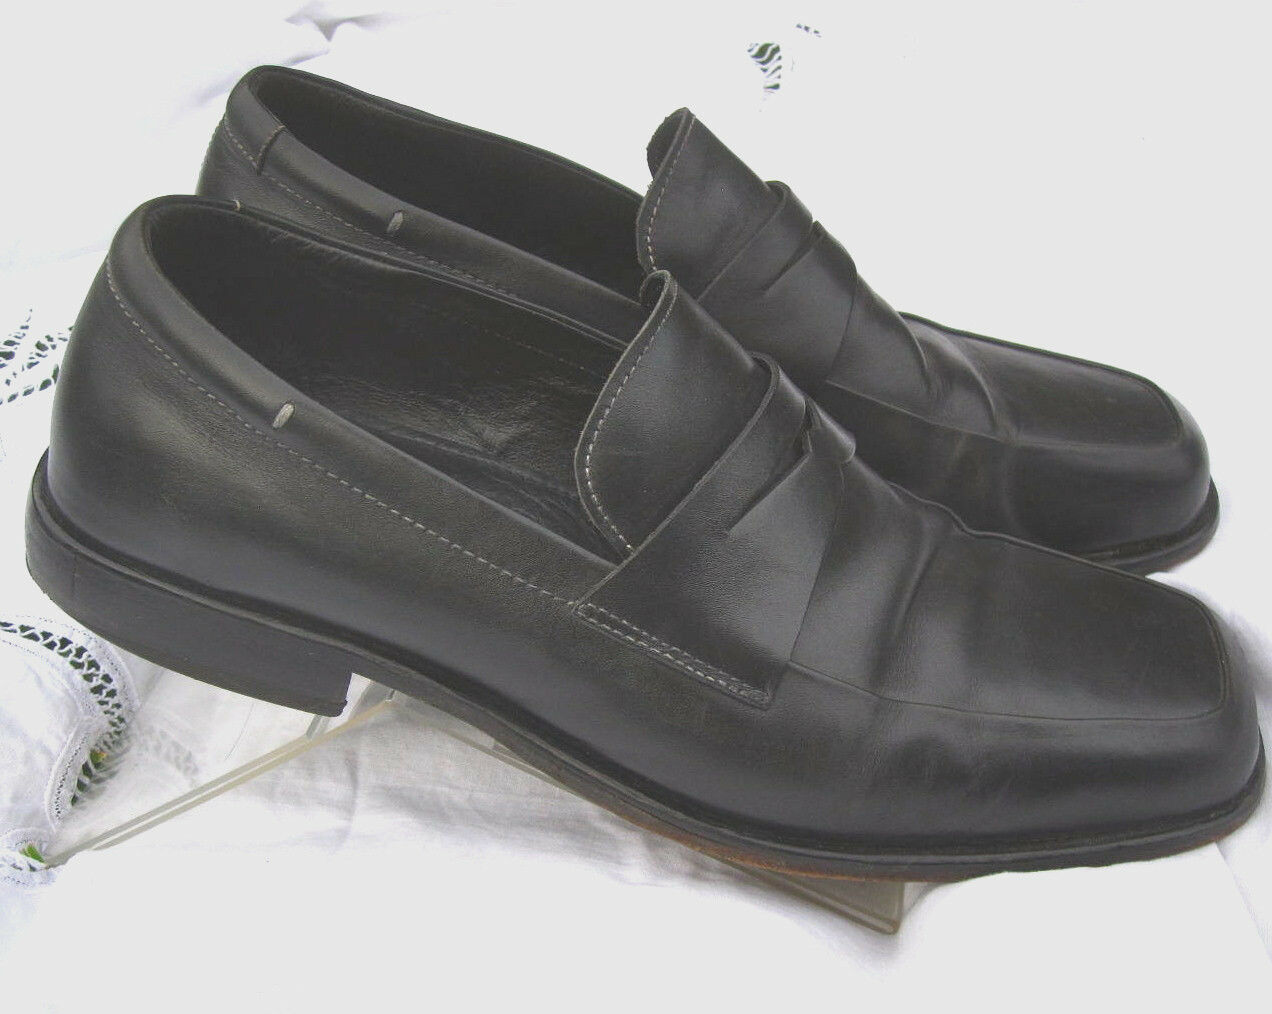 be24cf1d375 Johnston and Murphy Black Leather Penny Loafers Mens 11 11 11 M 381cd2